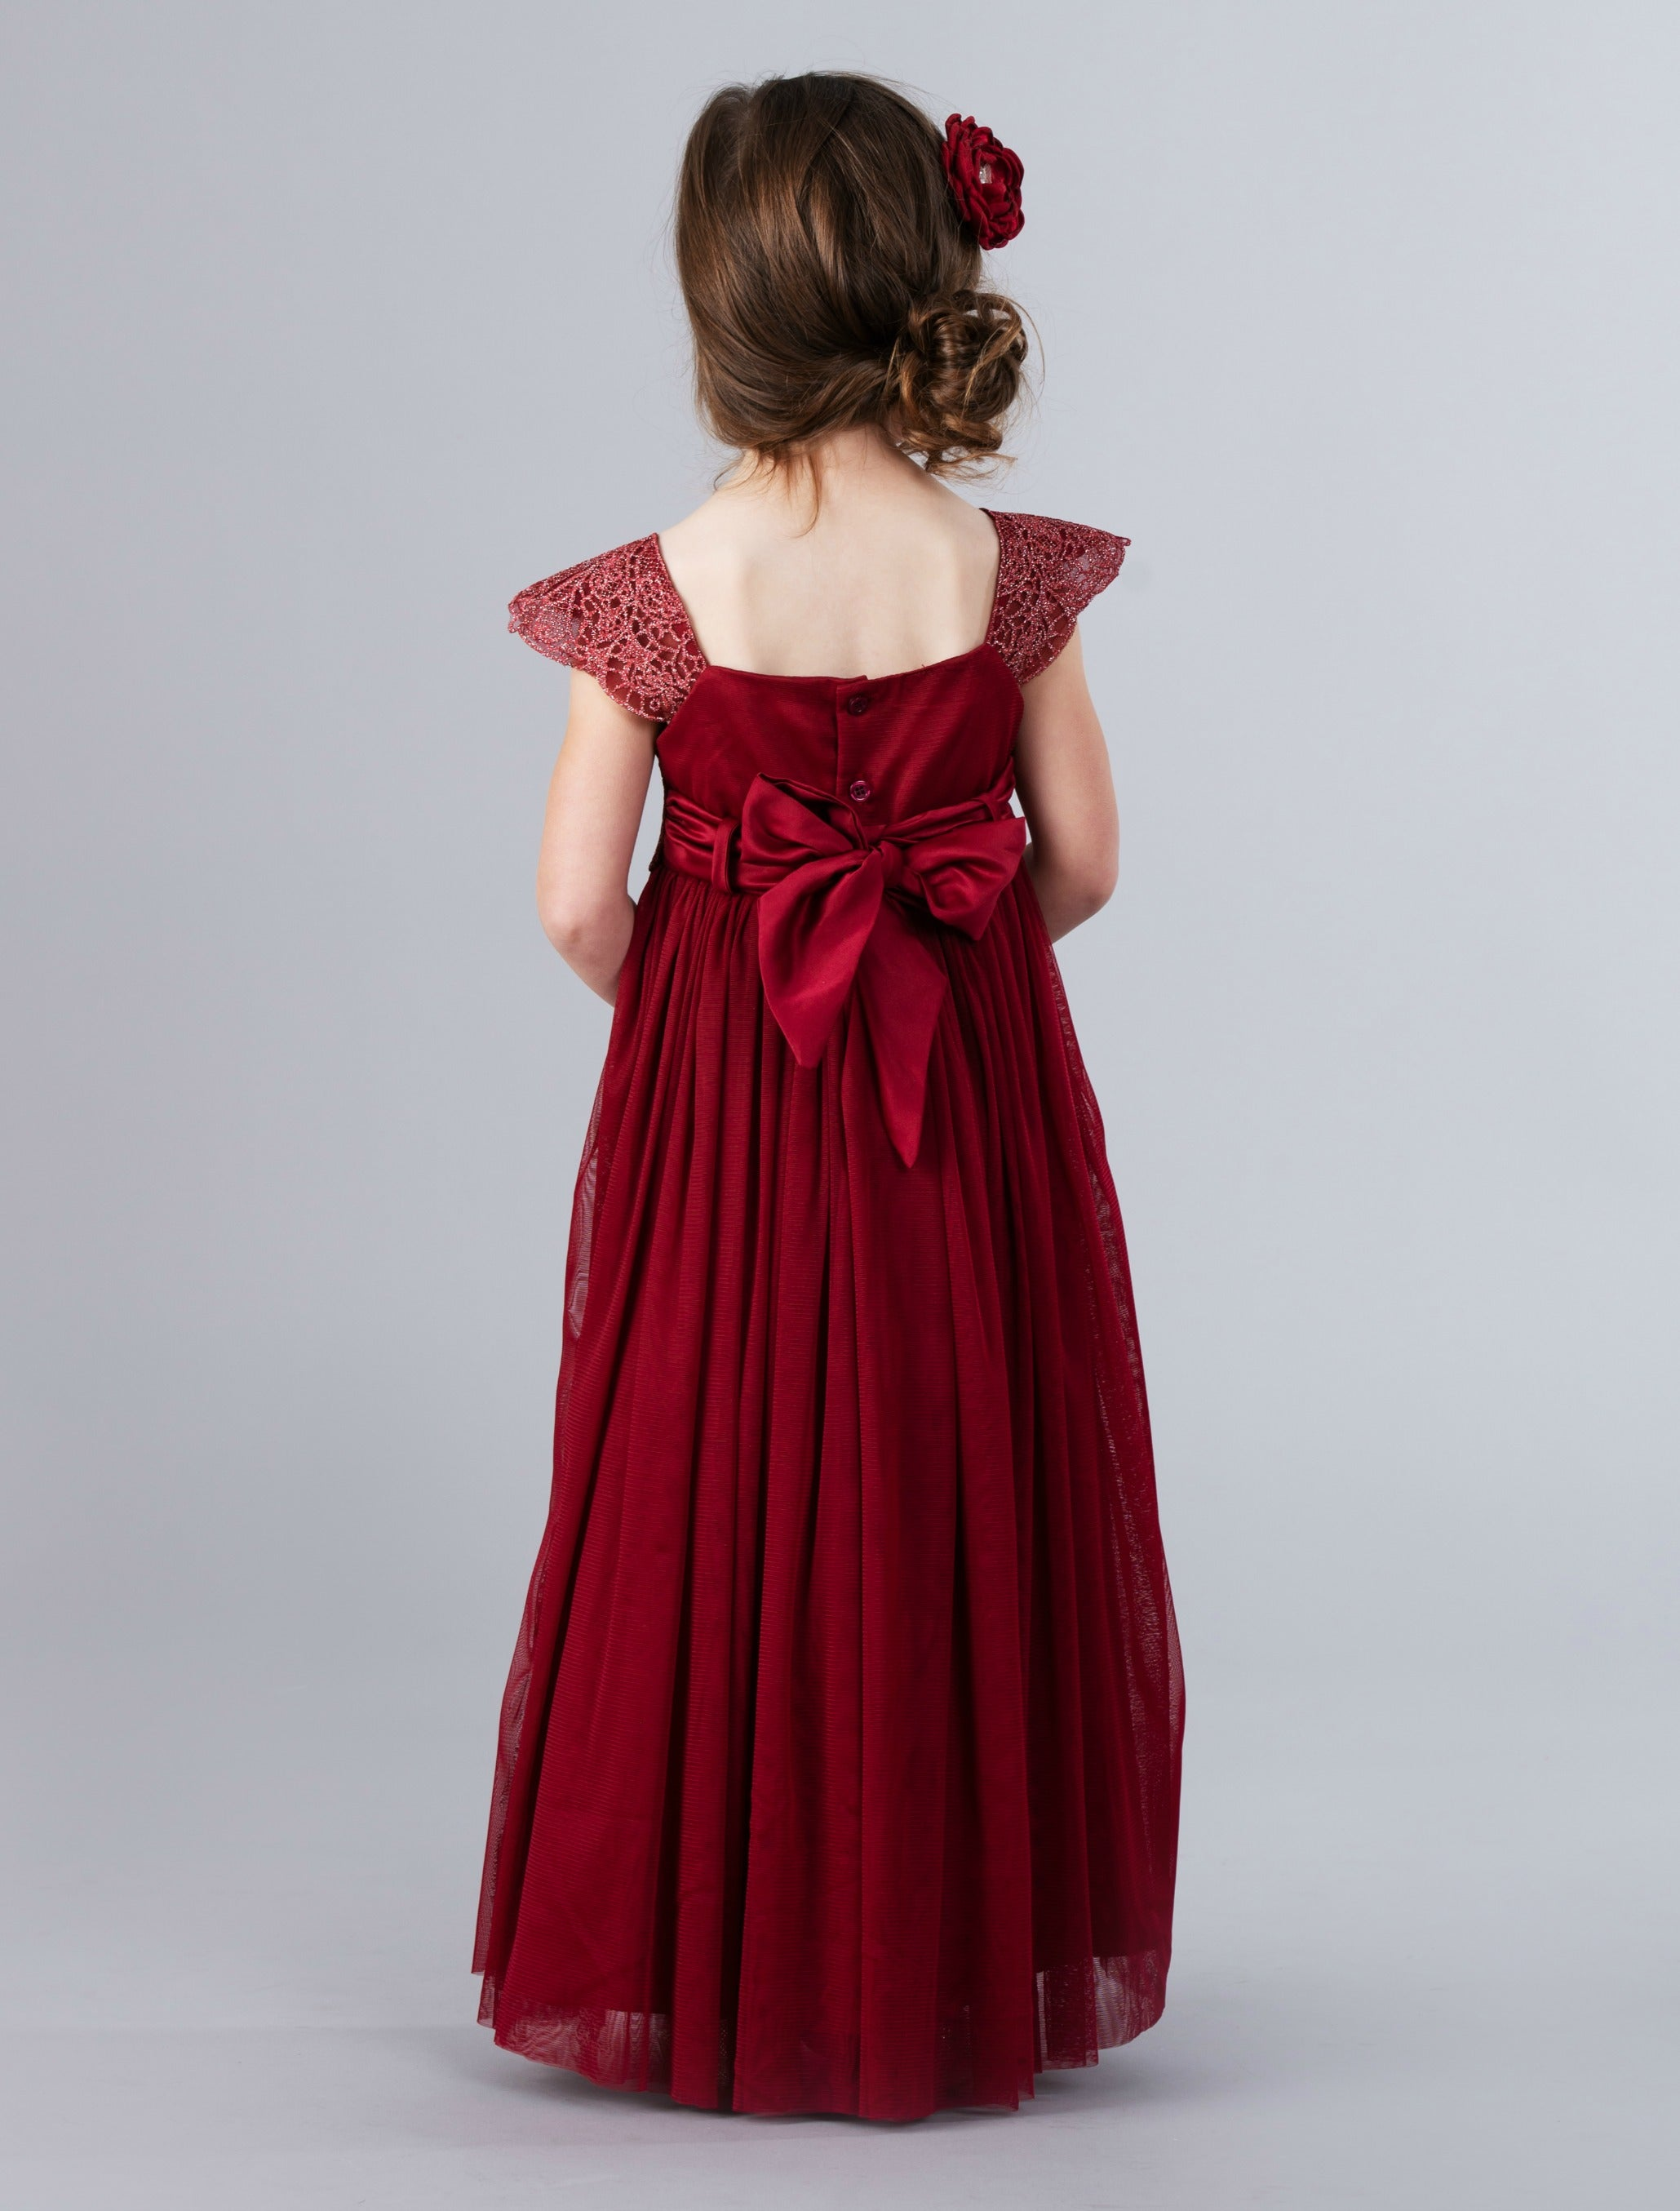 d50f4f920aad7 Georgia Belle Flower Girl Dress - Burgundy – Think Pink Bows